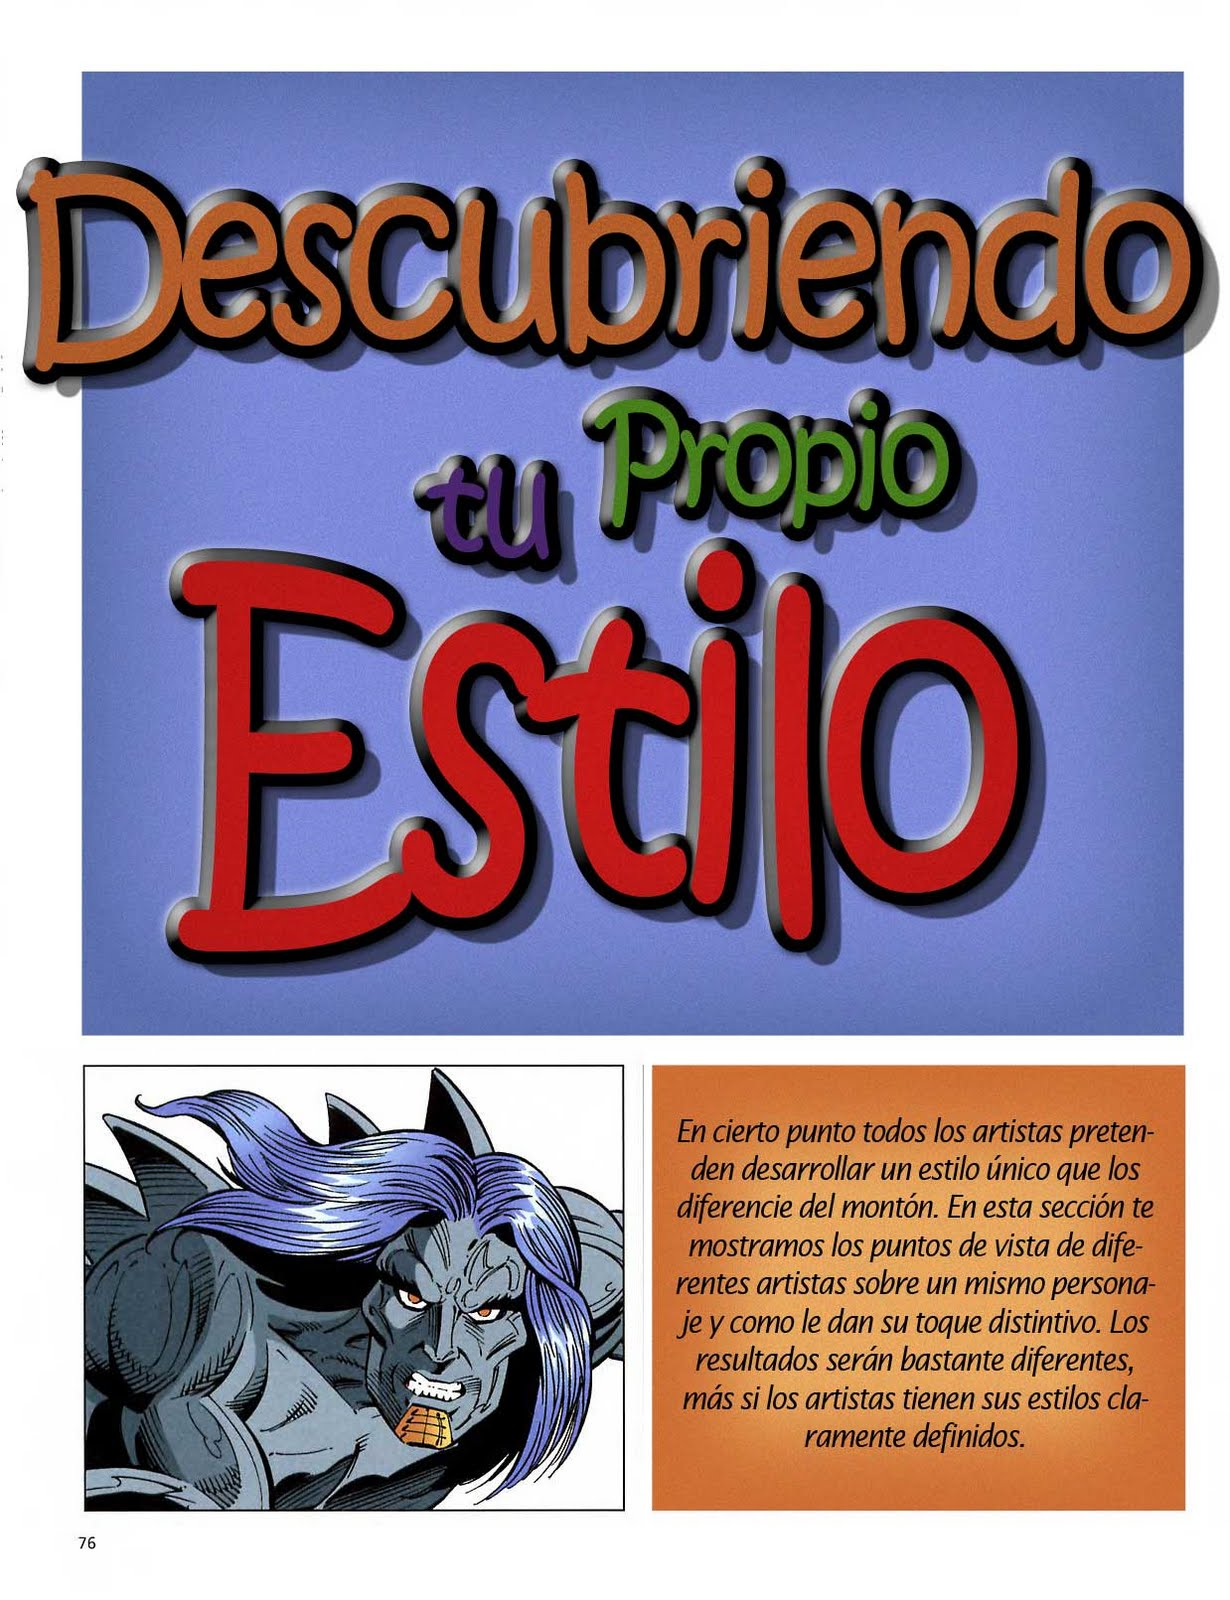 Escribe Tu Propio Libro Desarte Contemporaneo Capitulo 6 Drawing Cutting Edge En